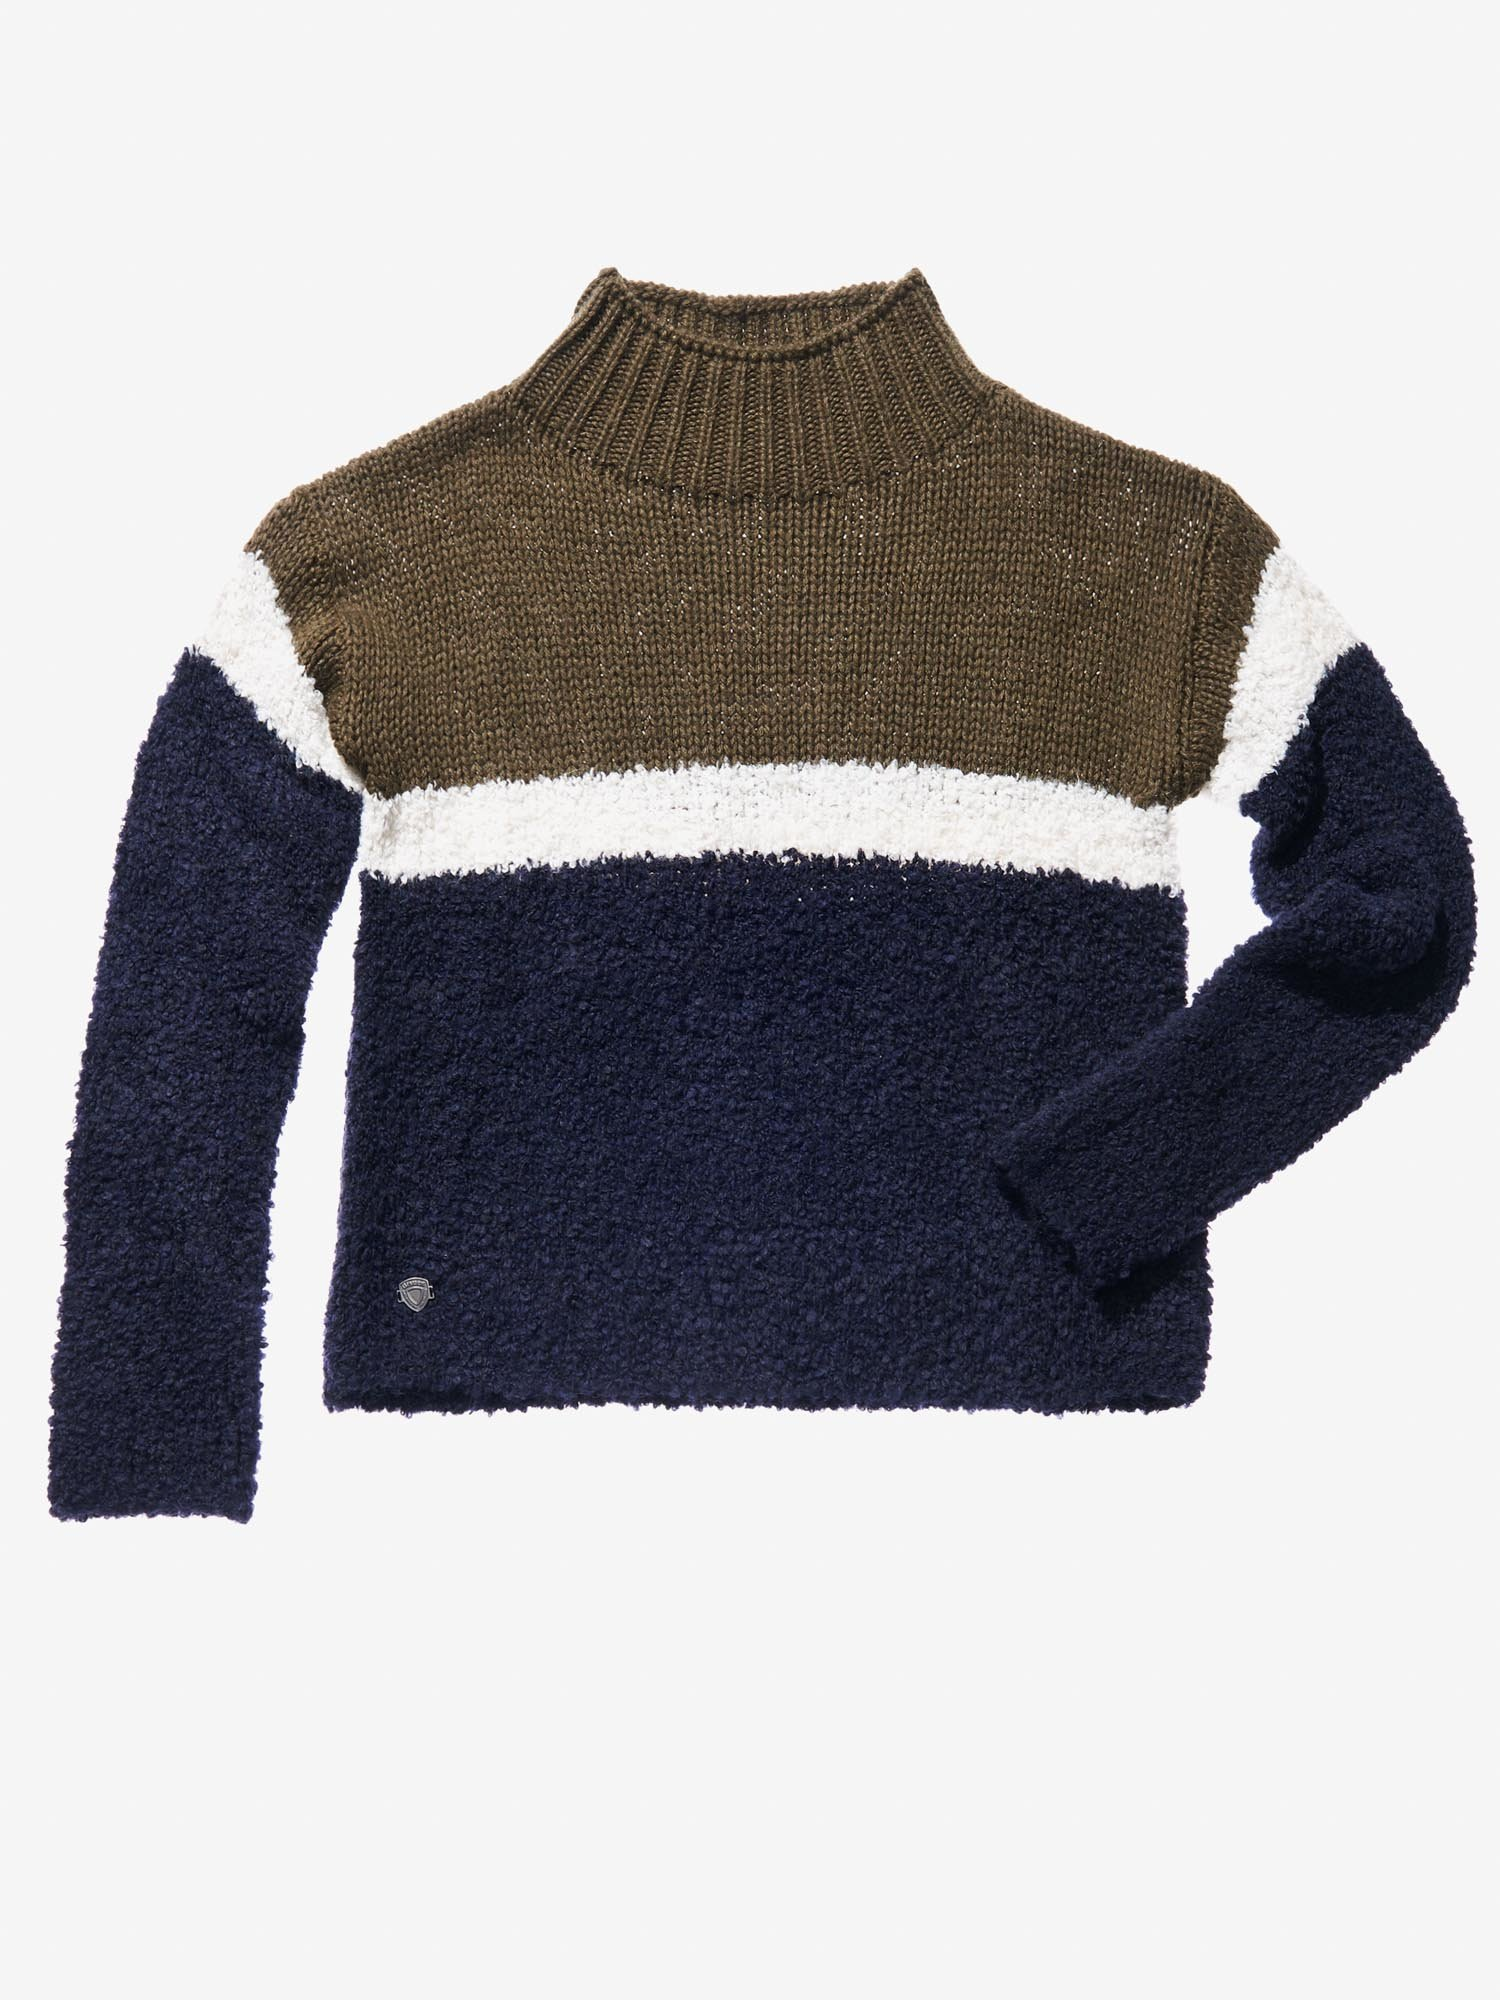 STRIPED TURTLENECK - Blauer